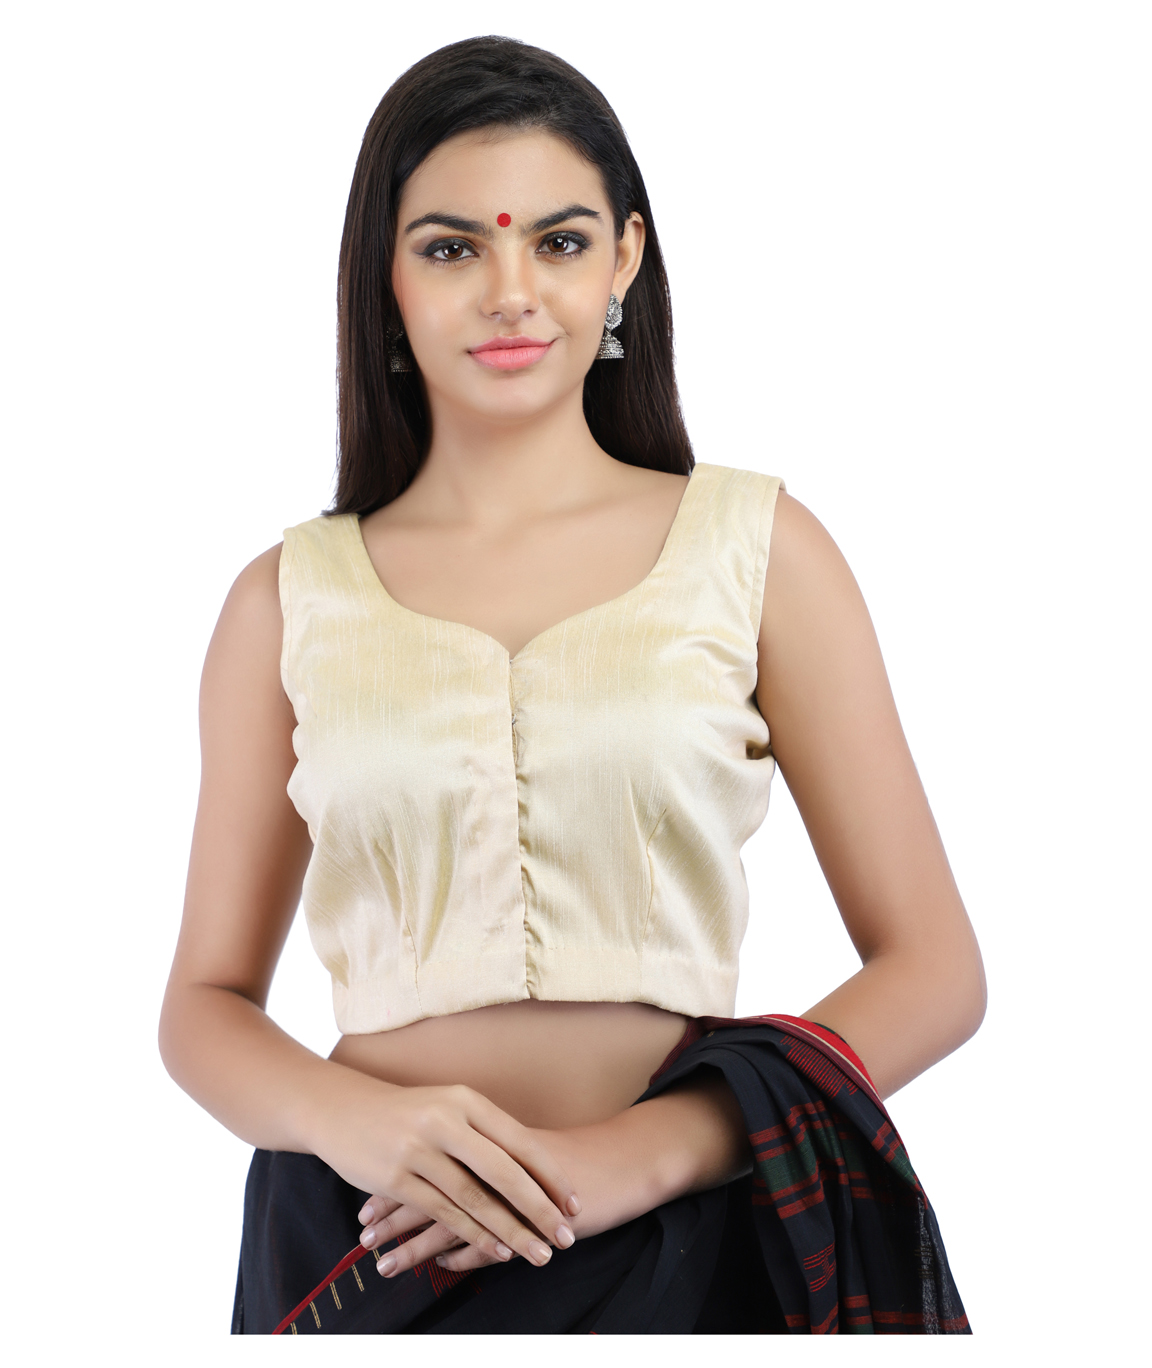 Dupion Silk Non-Padded Blouse in Beige With hook Closure on Front (CLOUR : LIGHT BEIGE)